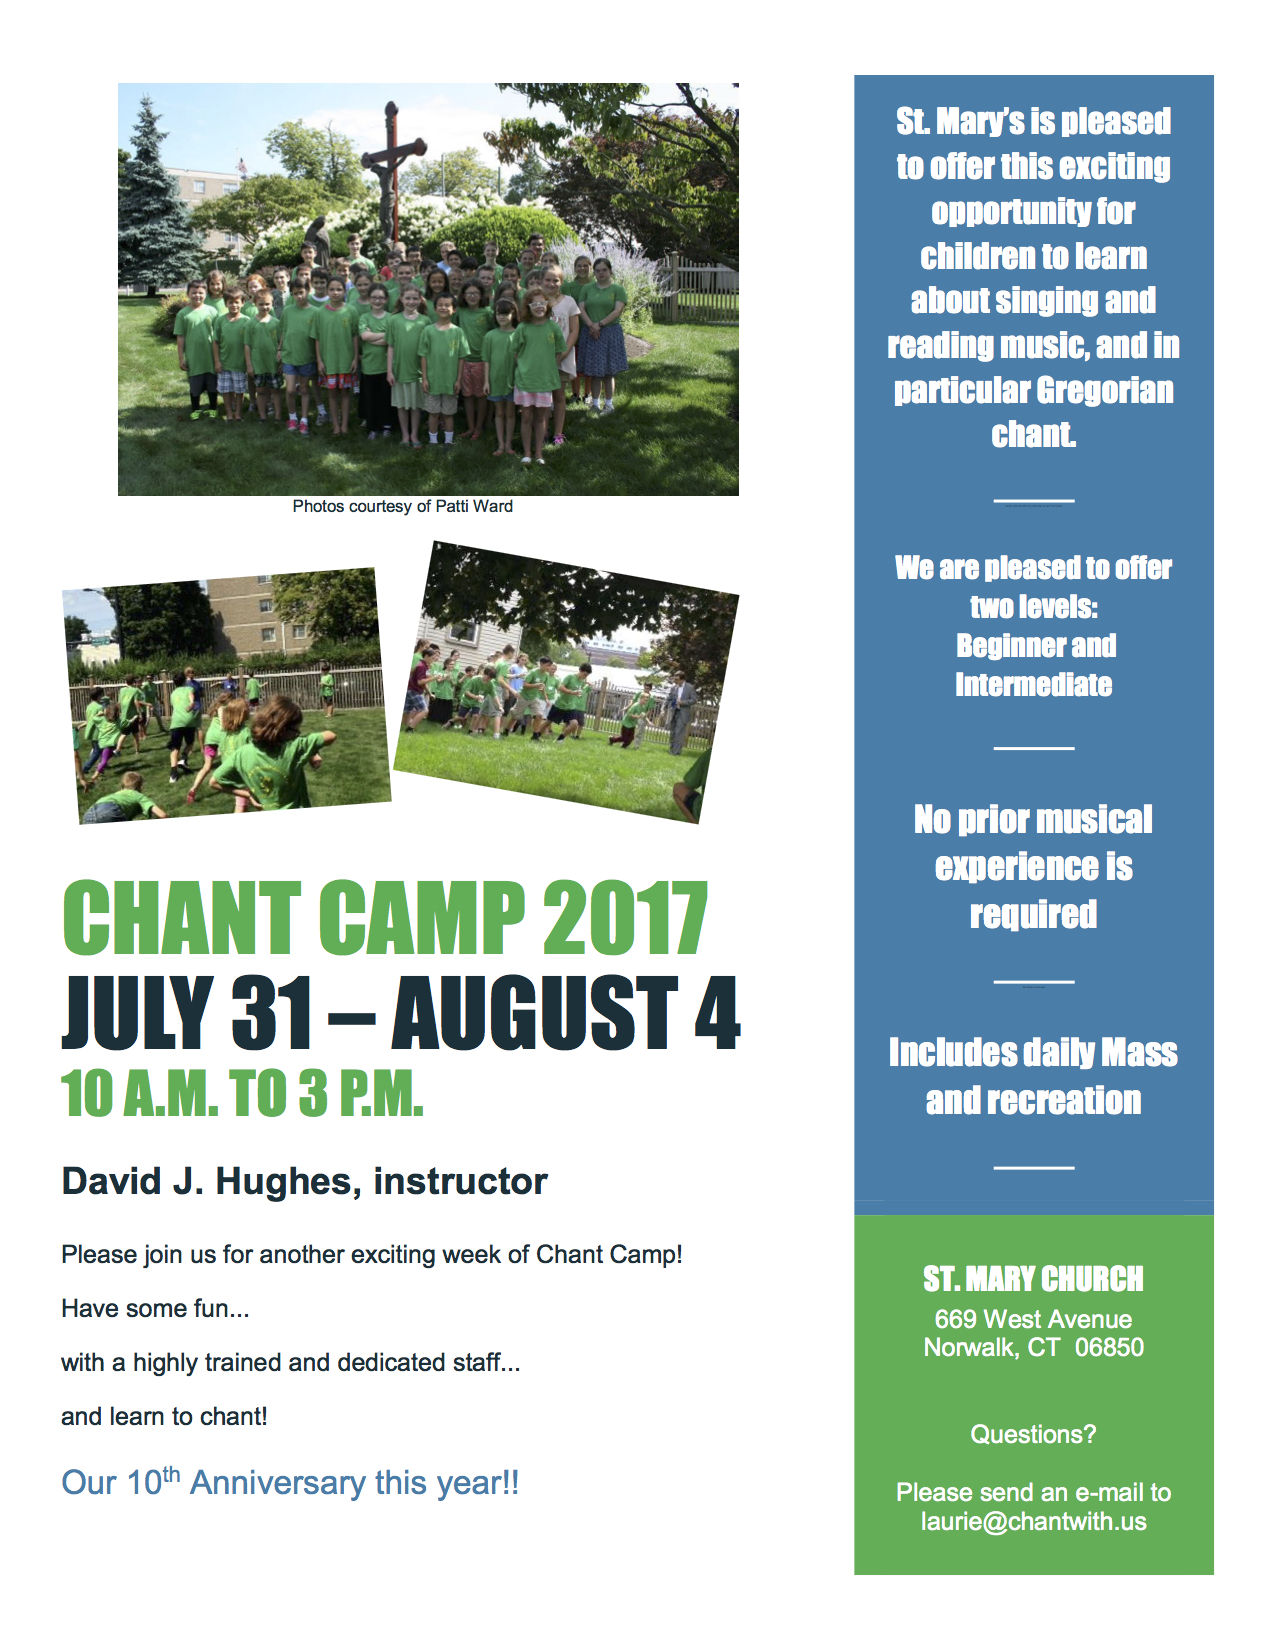 Chant Camp 2017 Flyer